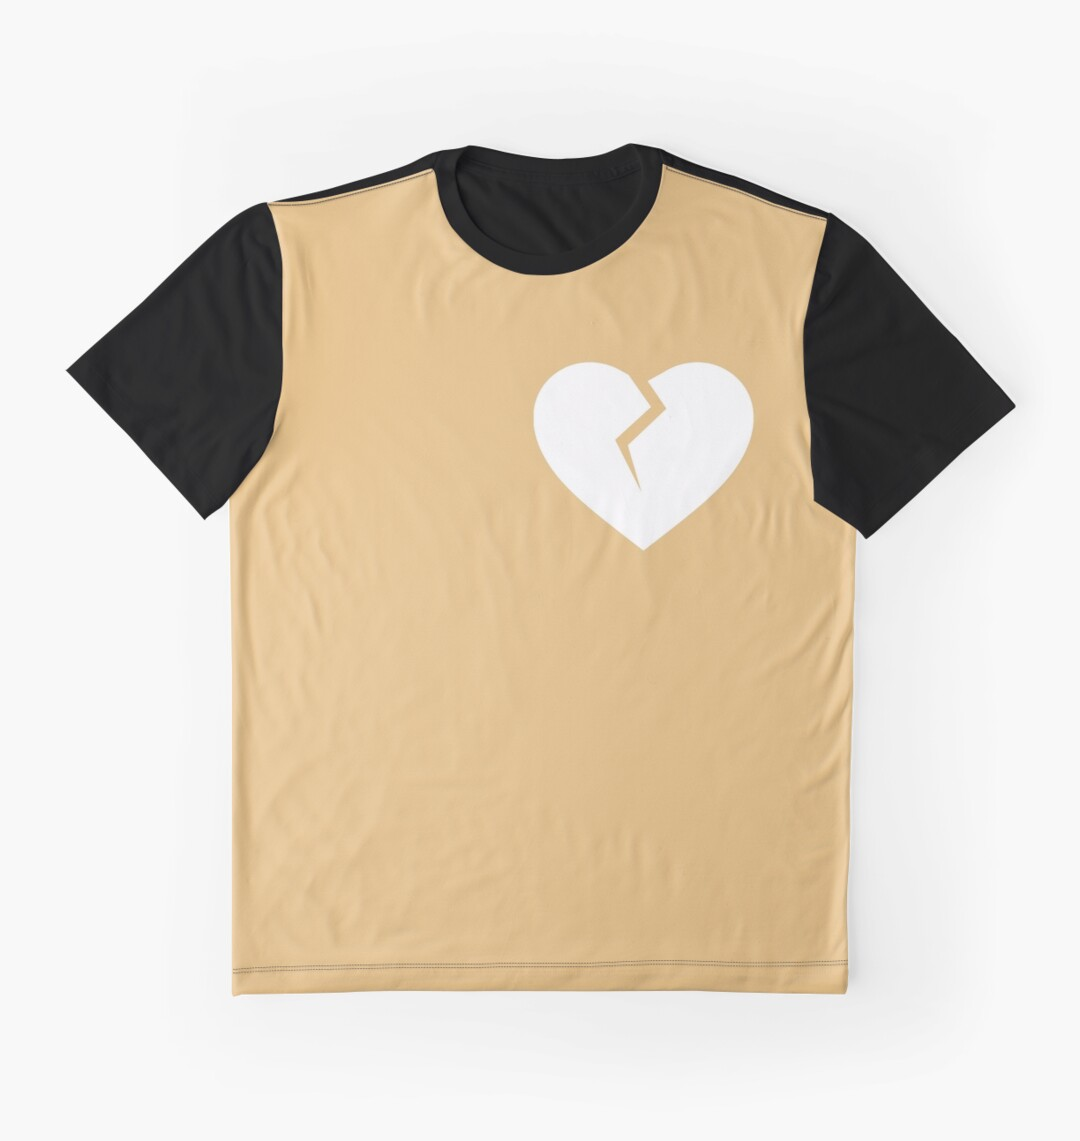 Heart design t shirt - Missing 9 Lee Yeol Chanyeol Broken Heart Design Limited Graphic T Shirts